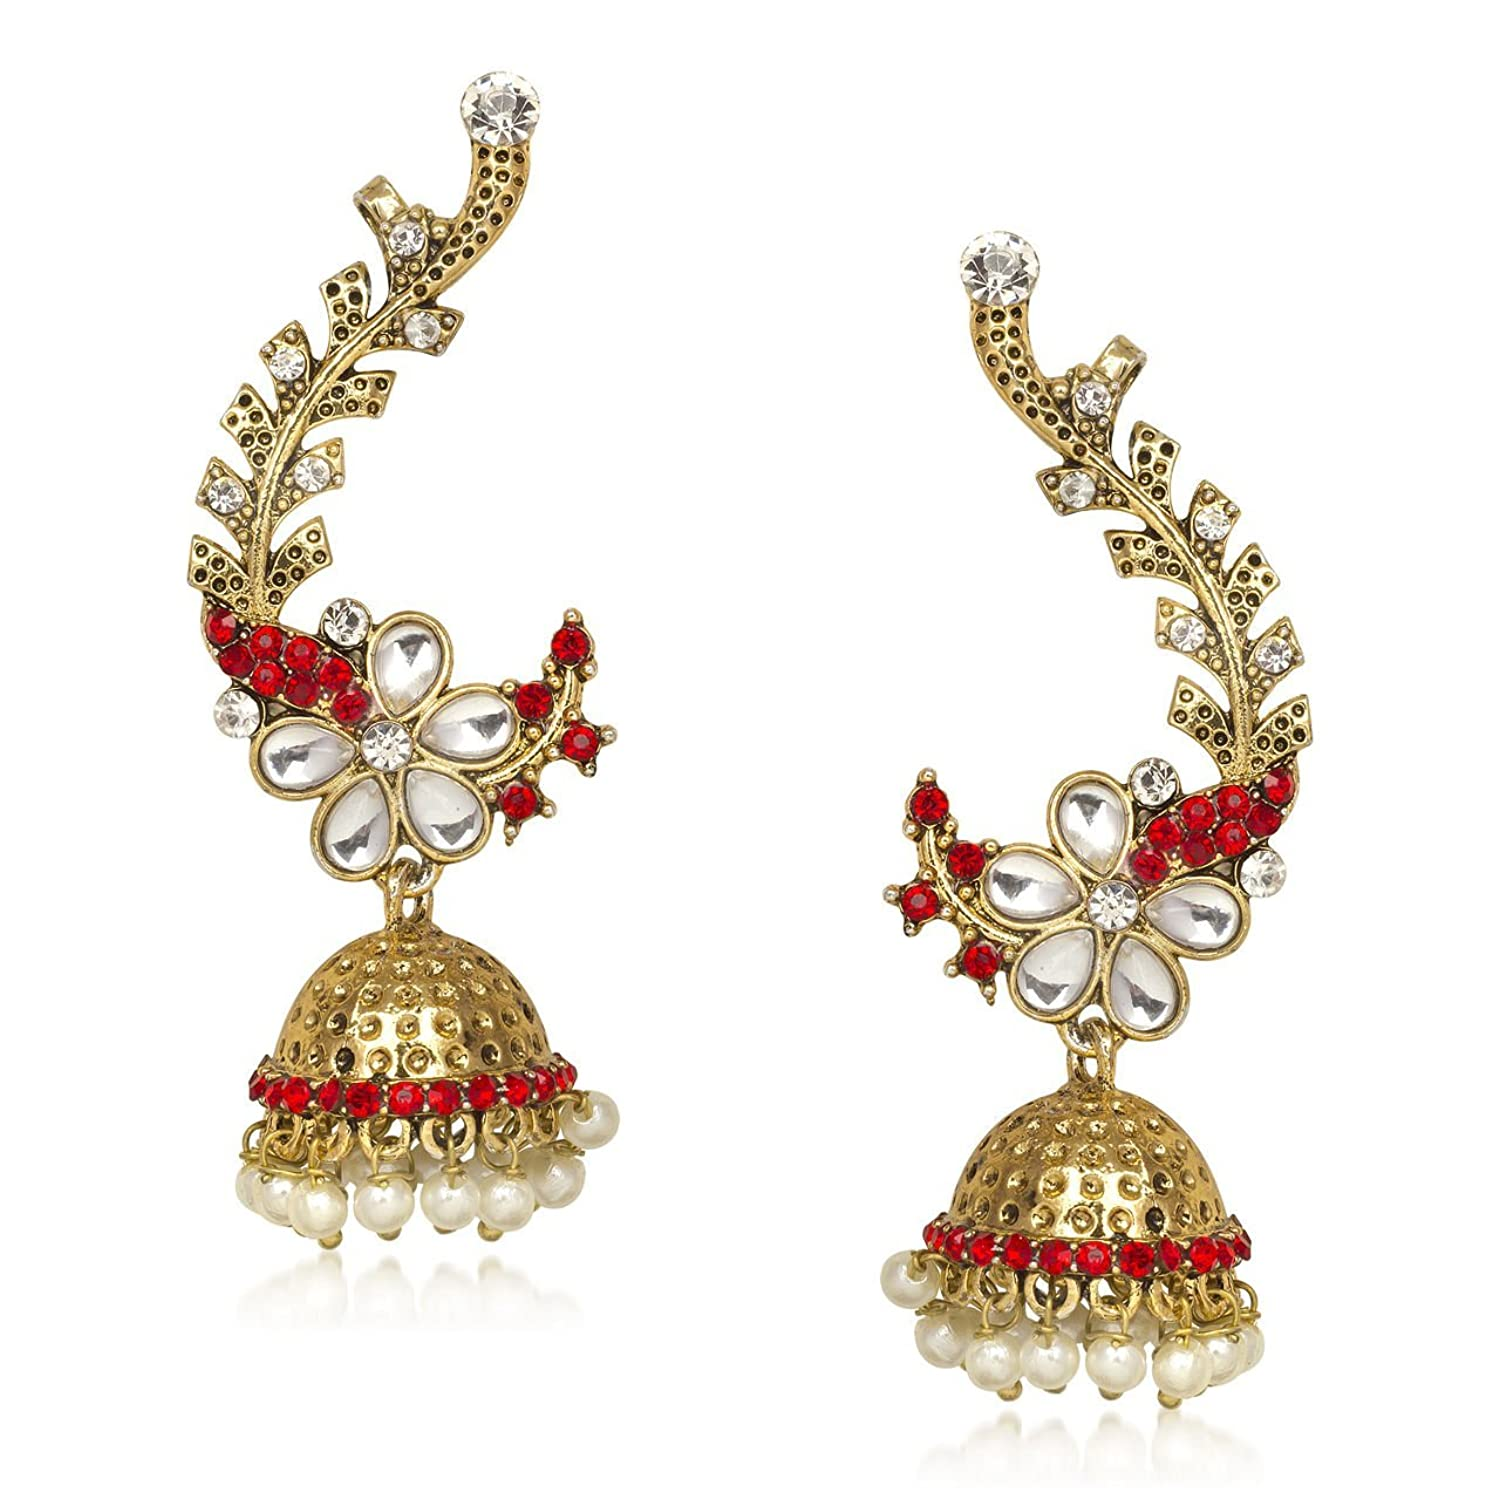 Meenaz Ear cuffs Traditional Earrings For Fancy Party Wear Wedding ...